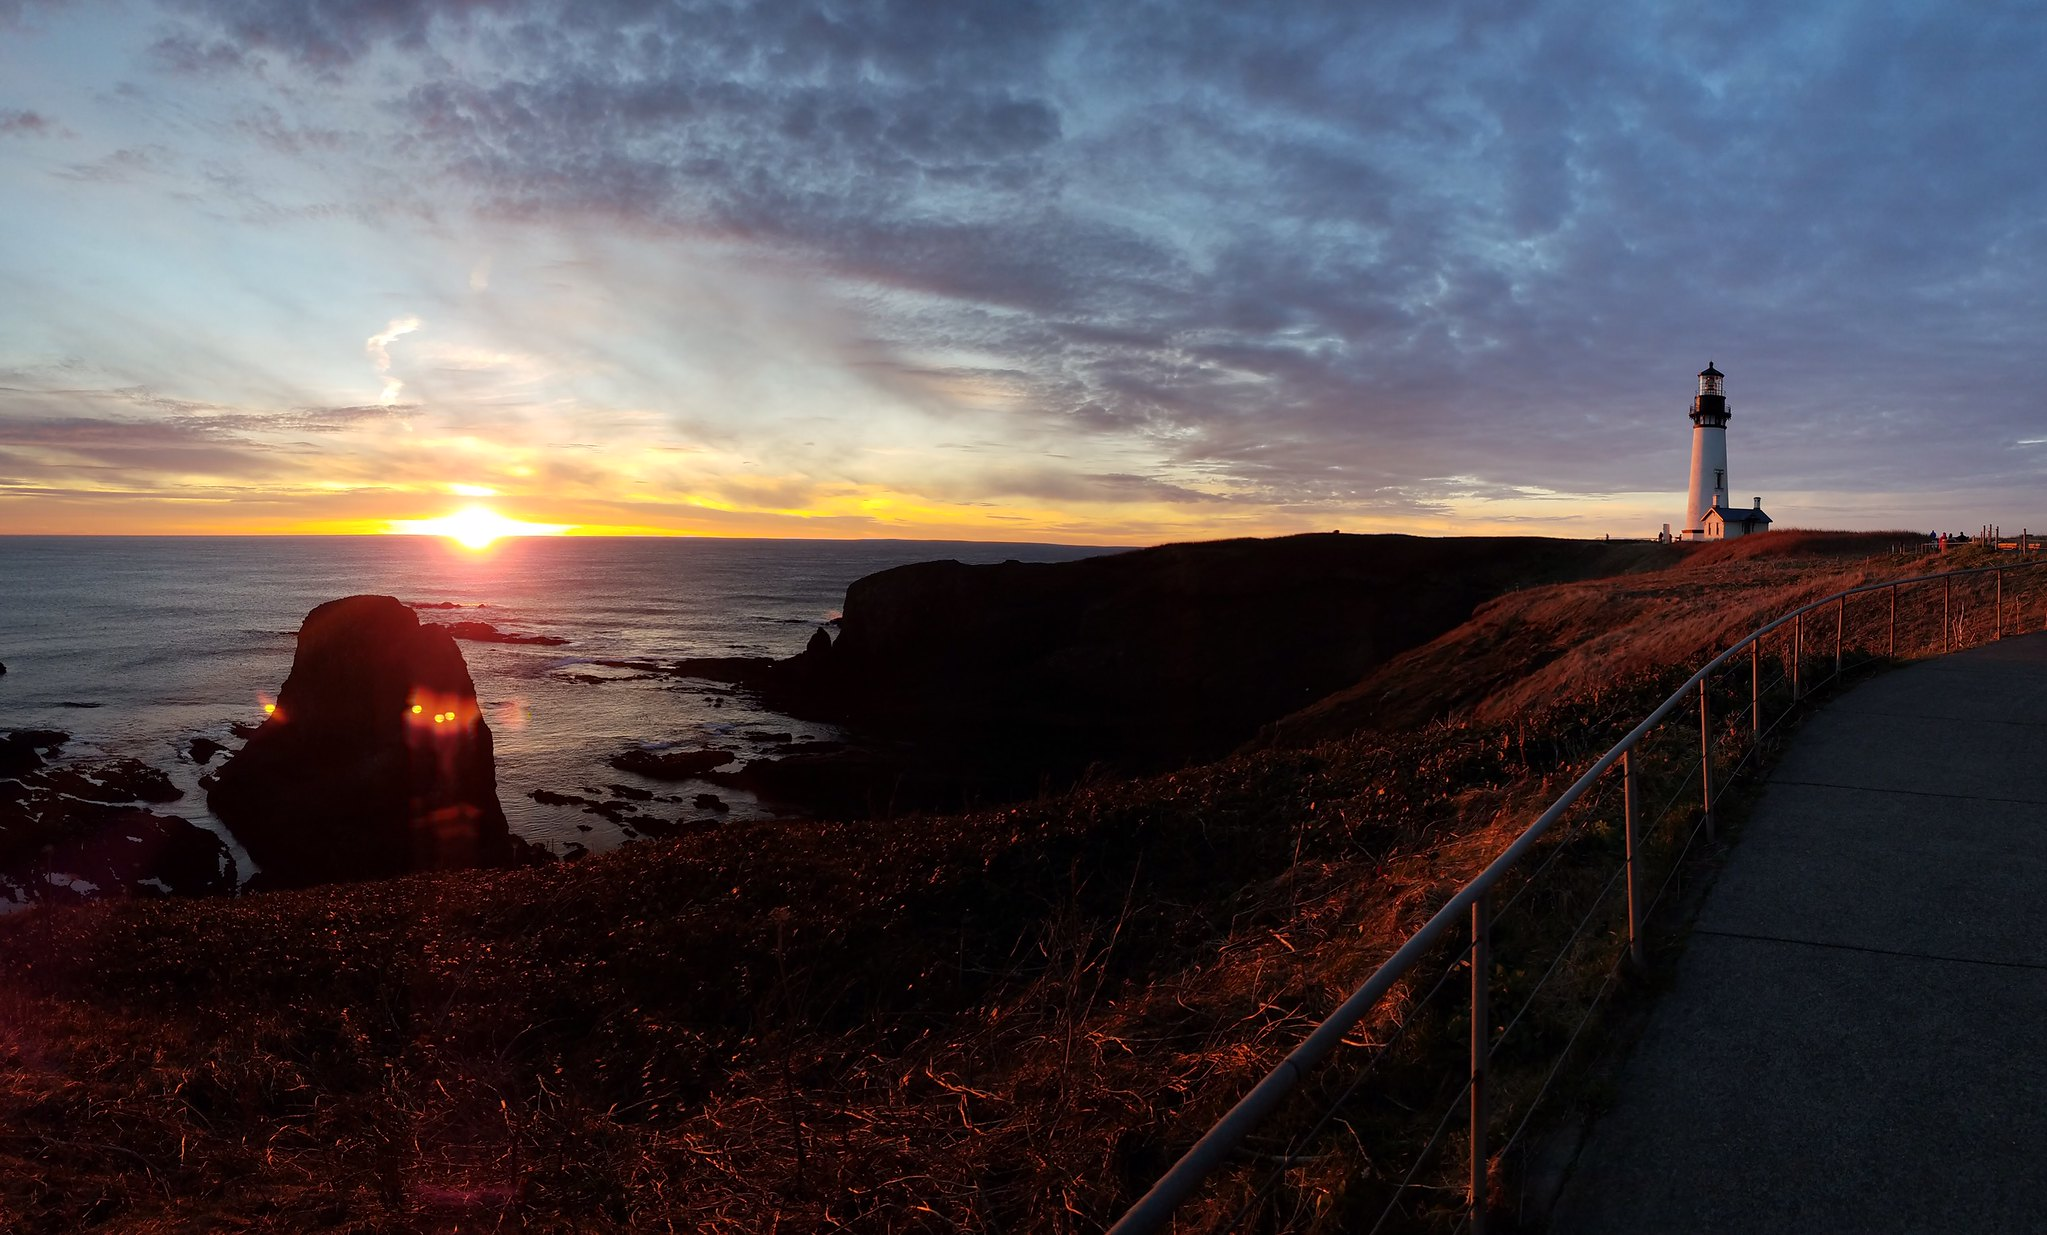 Sunset at Yaquina Head (BLM/CC by 2.0)